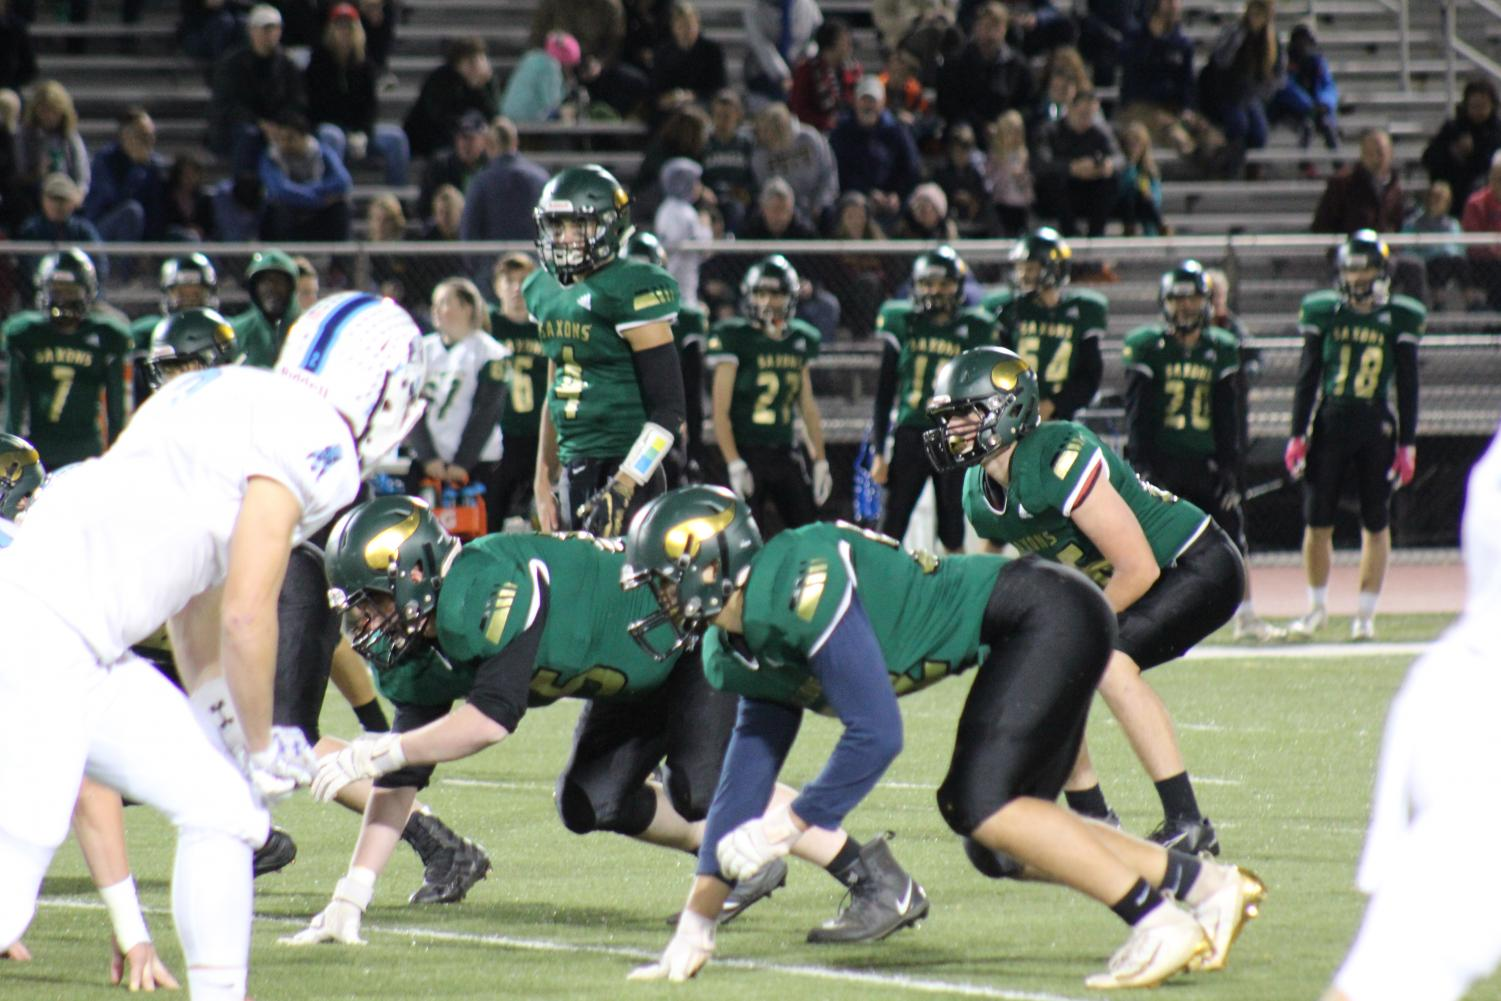 Langley's varsity football team faces off against the Yorktown Patriots (Photo by Yousef Mufti).